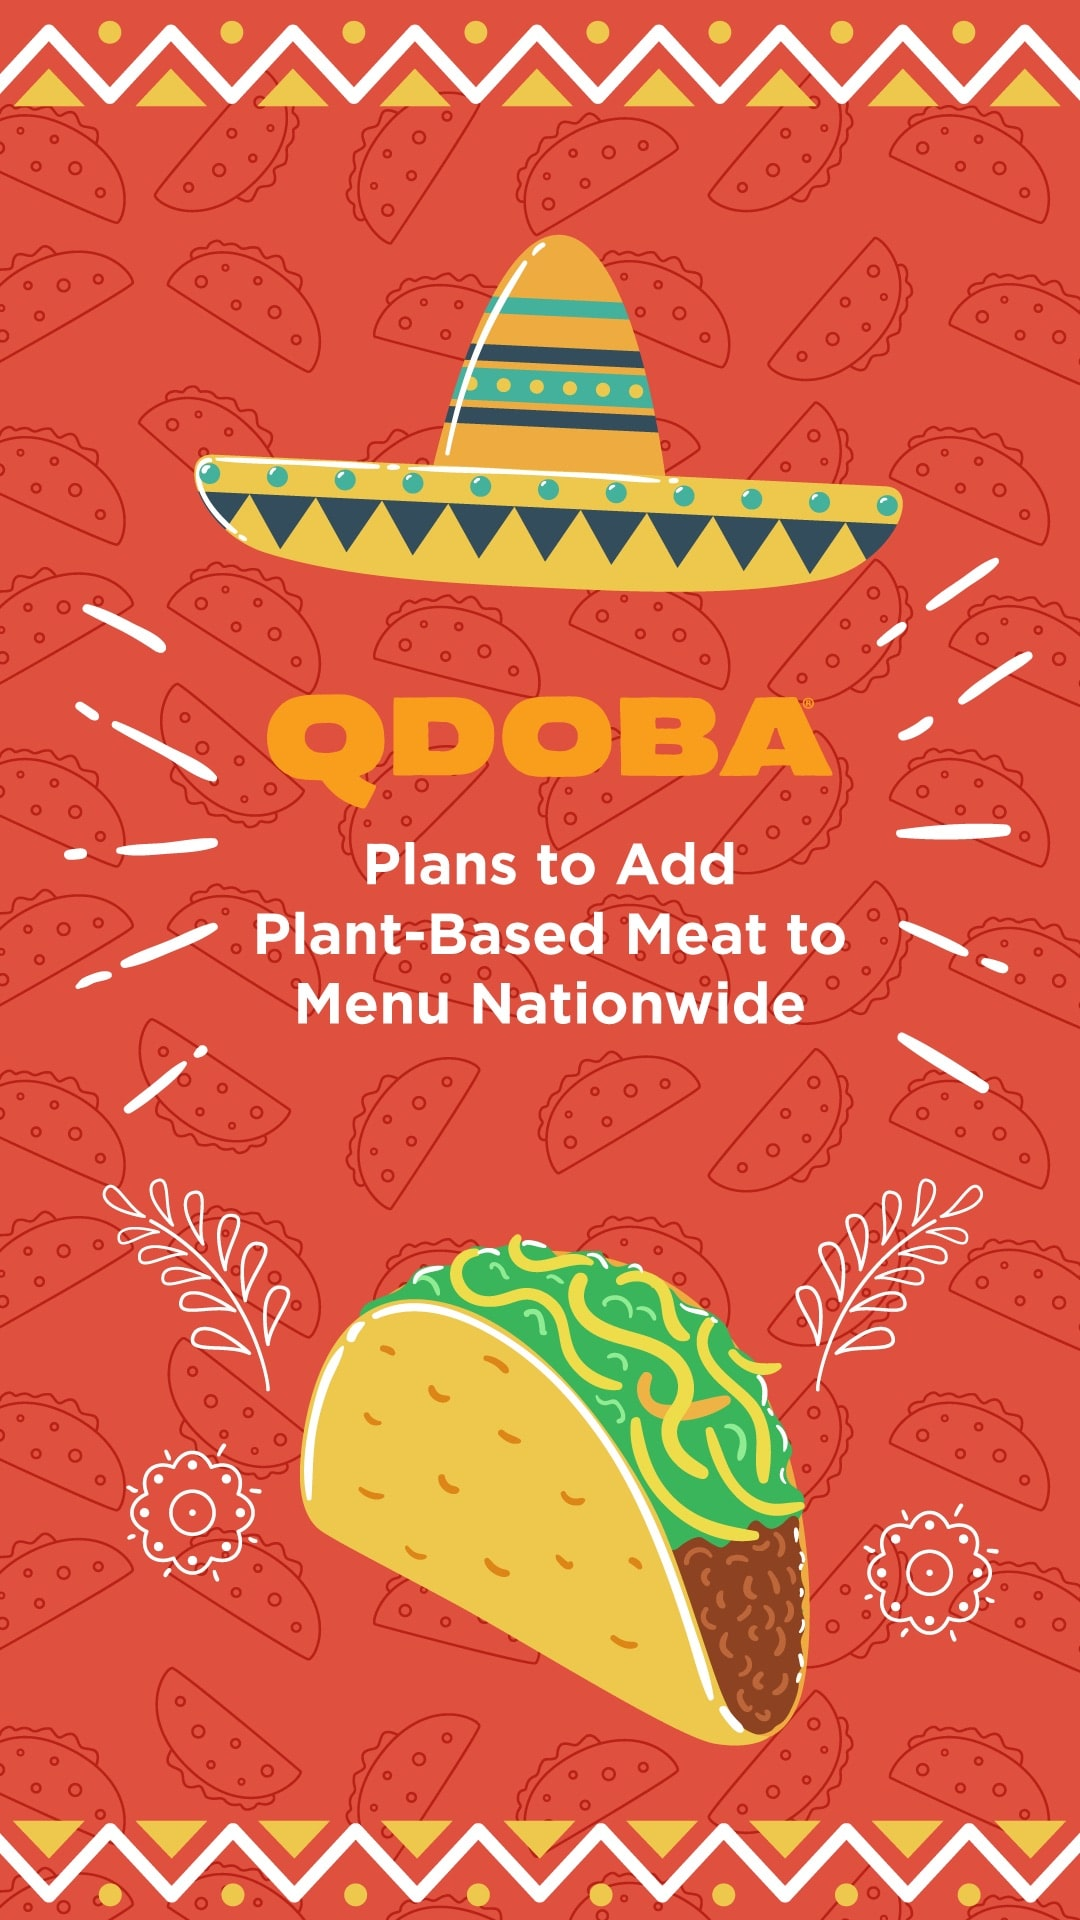 Qdoba Plans to Add Plant-Based Meat to Menu Nationwide